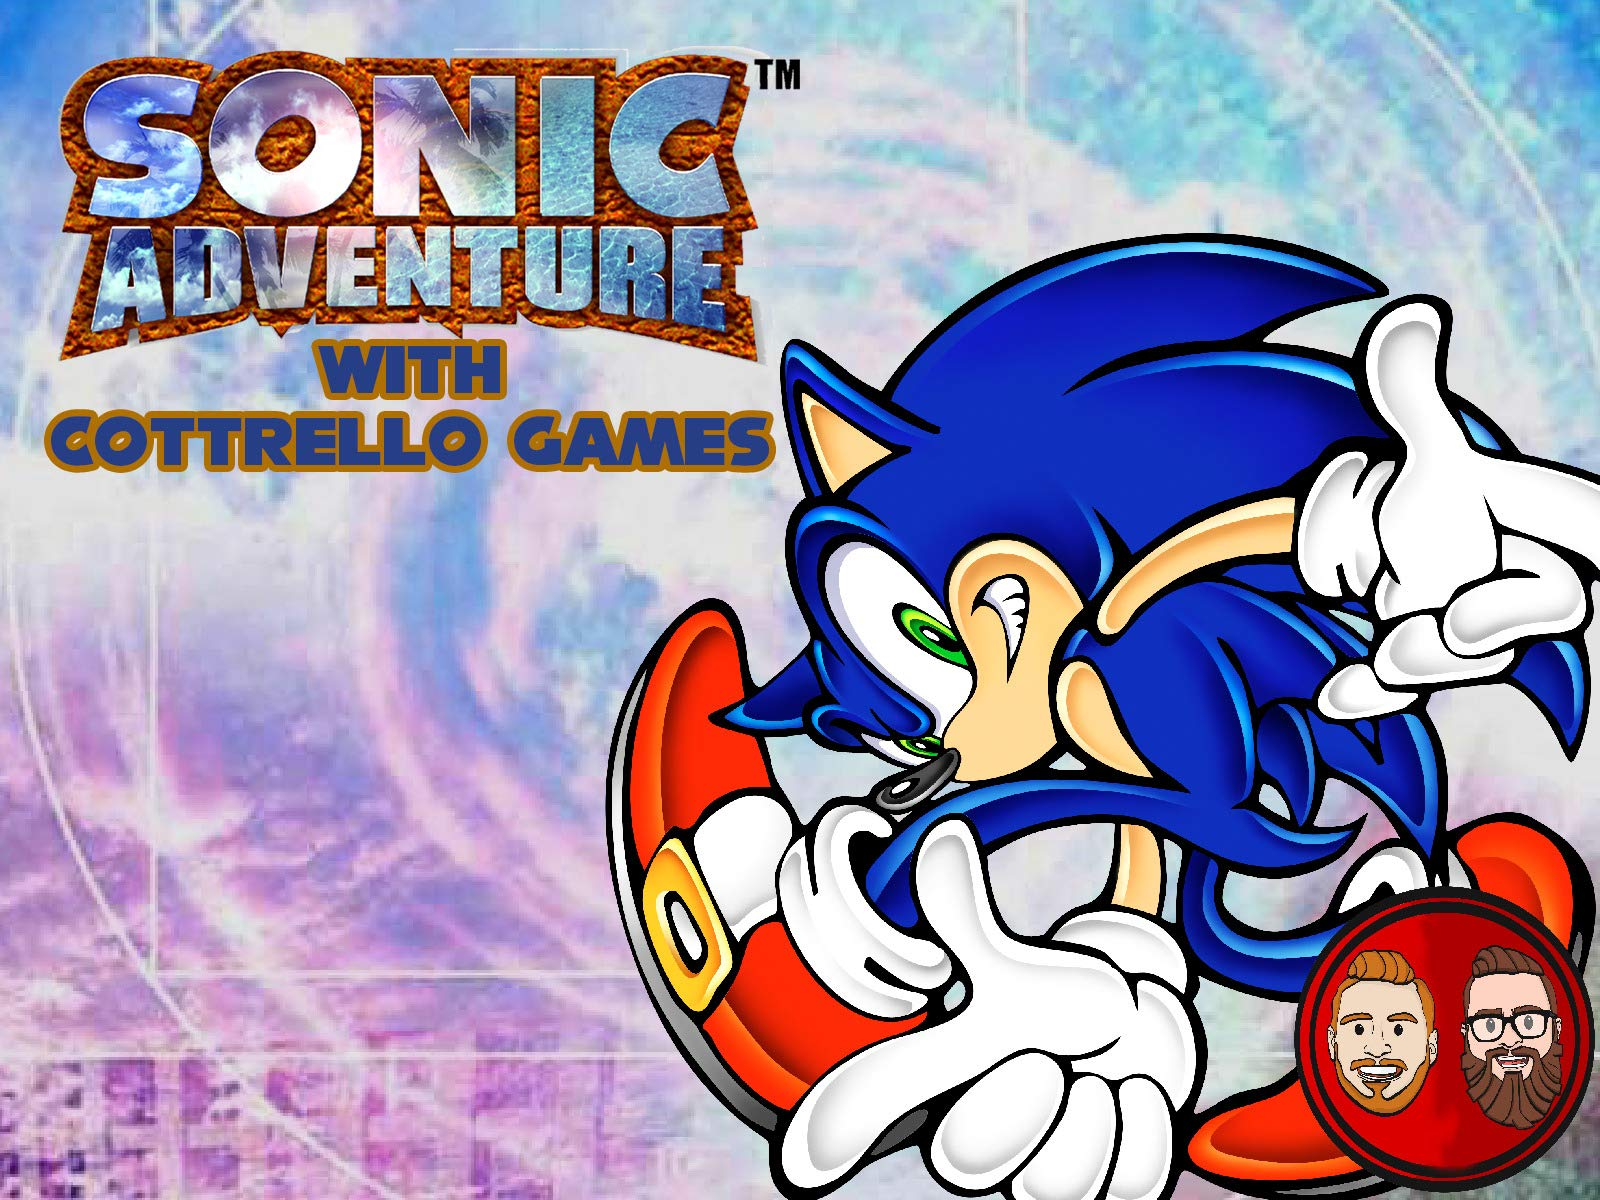 Sonic Adventure with Cottrello Games